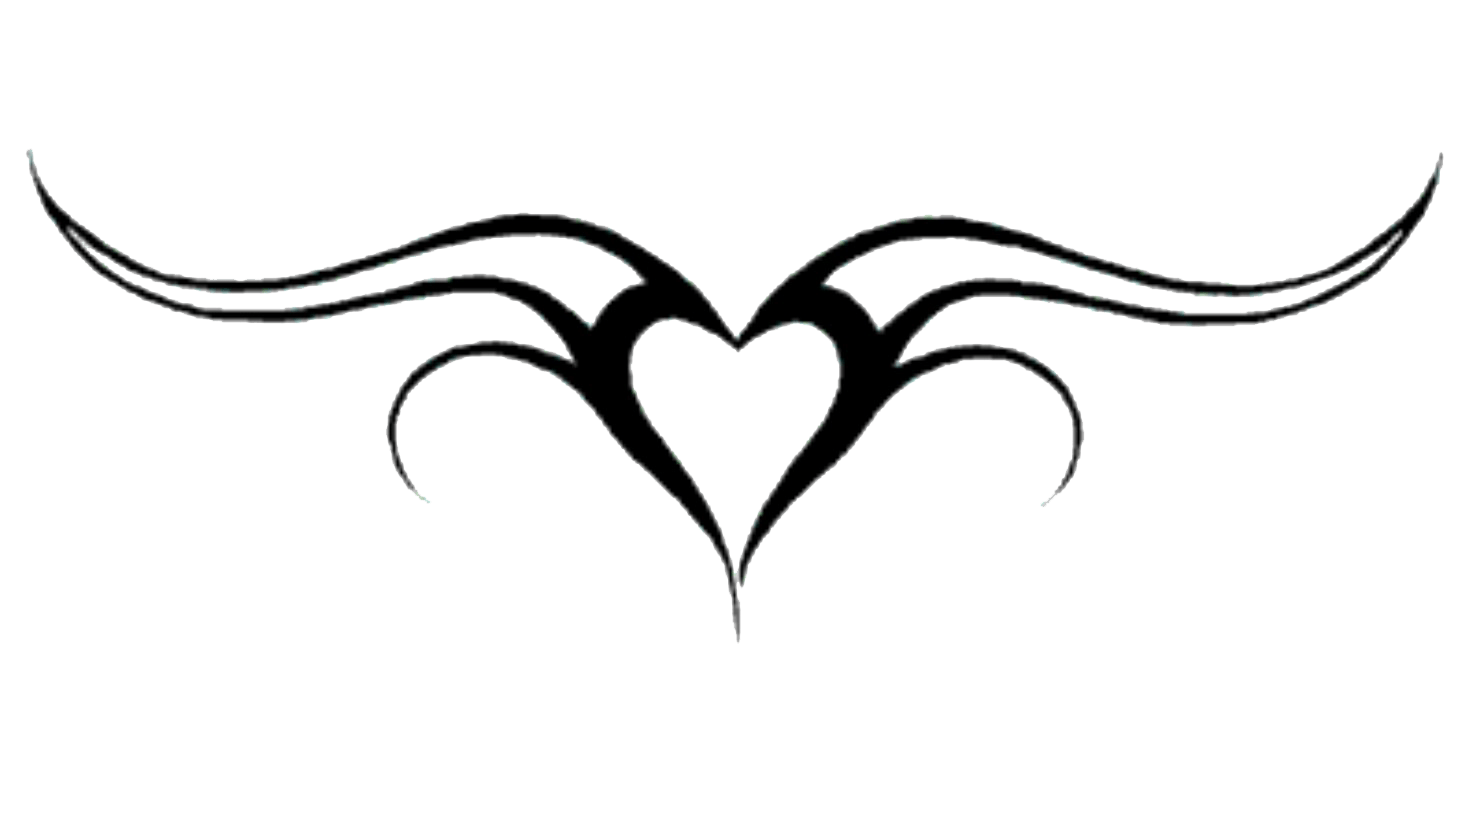 Heart Tattoos Png Transparent Heart Tattoospng Images